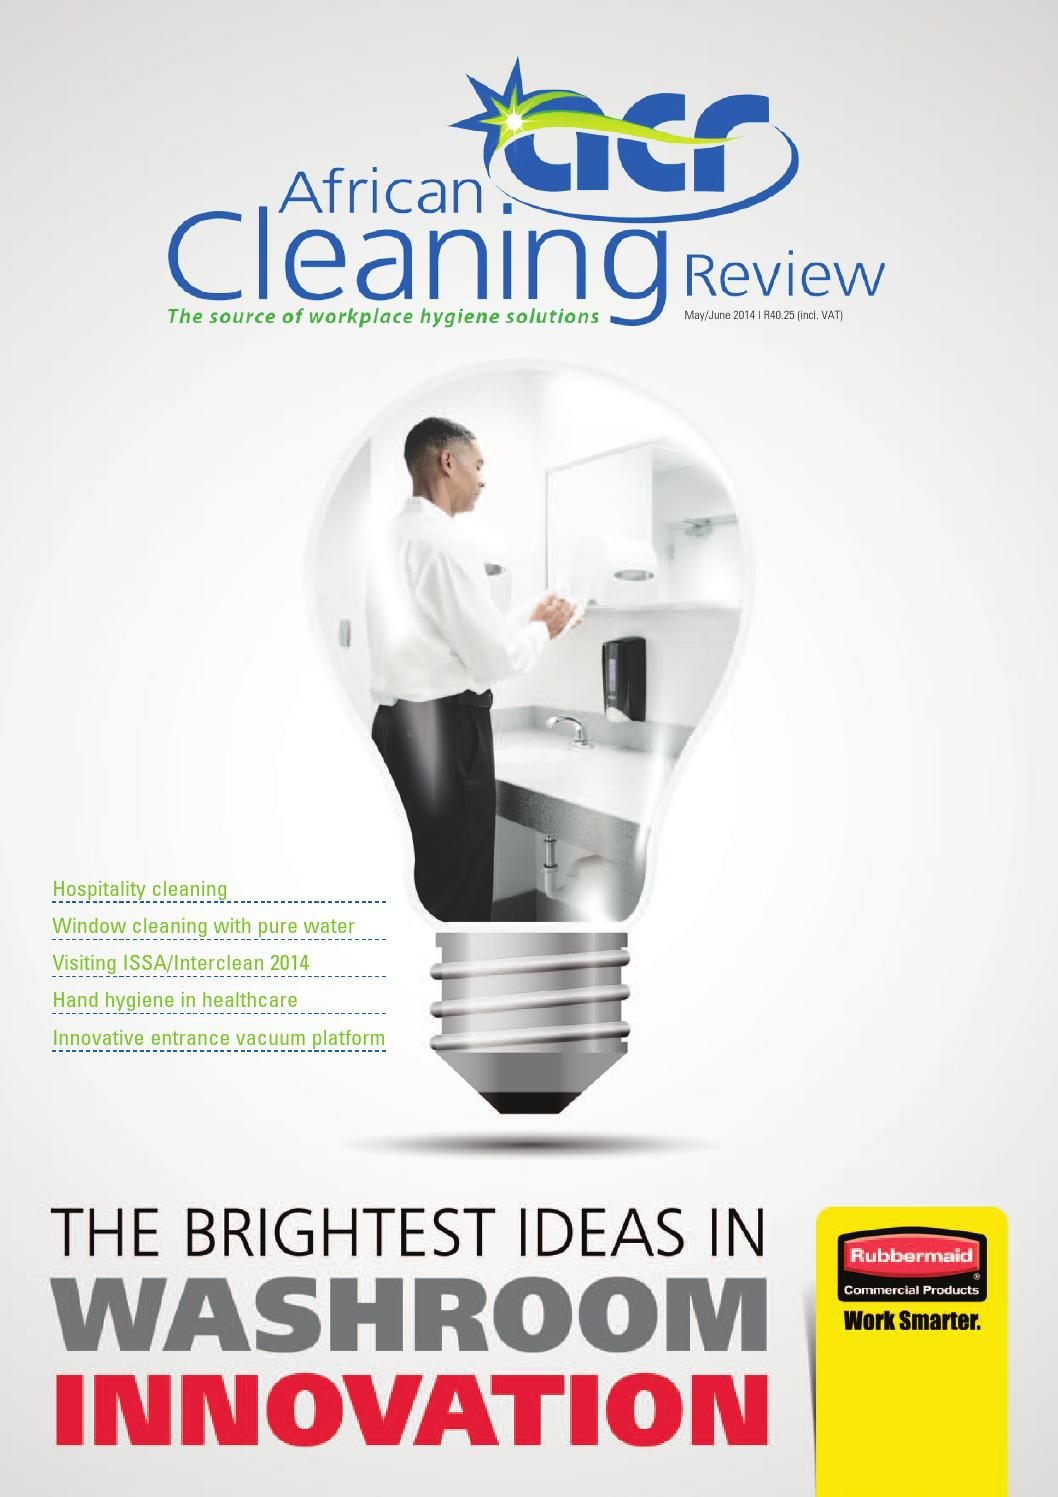 african cleaning review by african cleaning review issuu